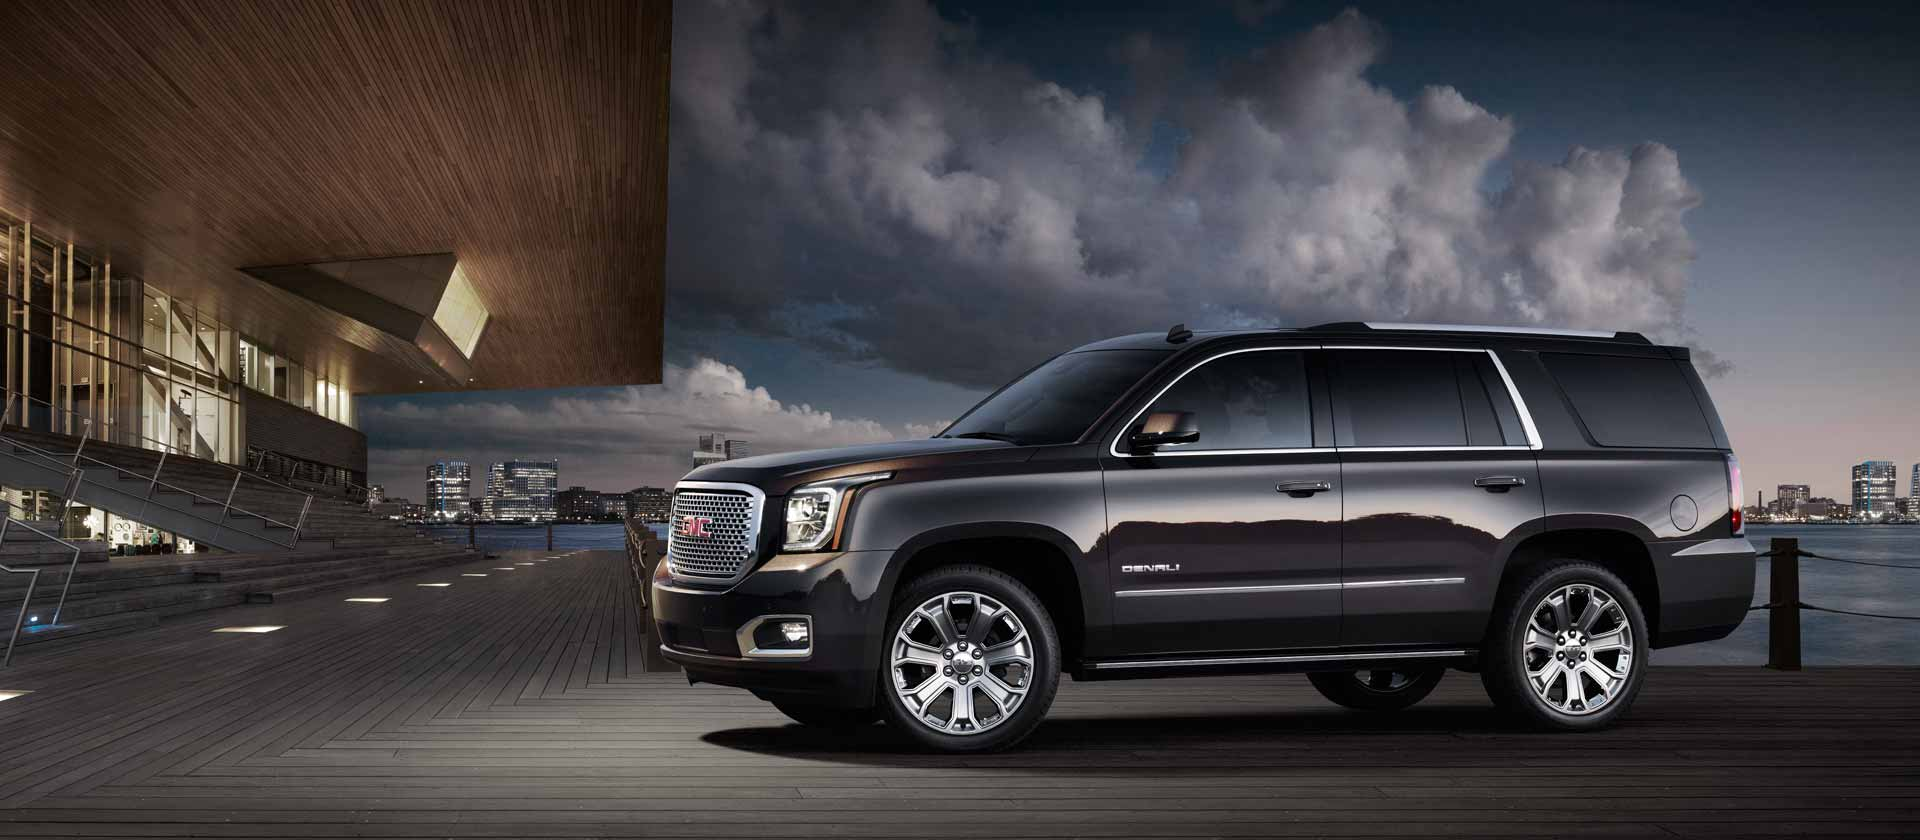 3 Reasons GMC Denali is Worth the Money